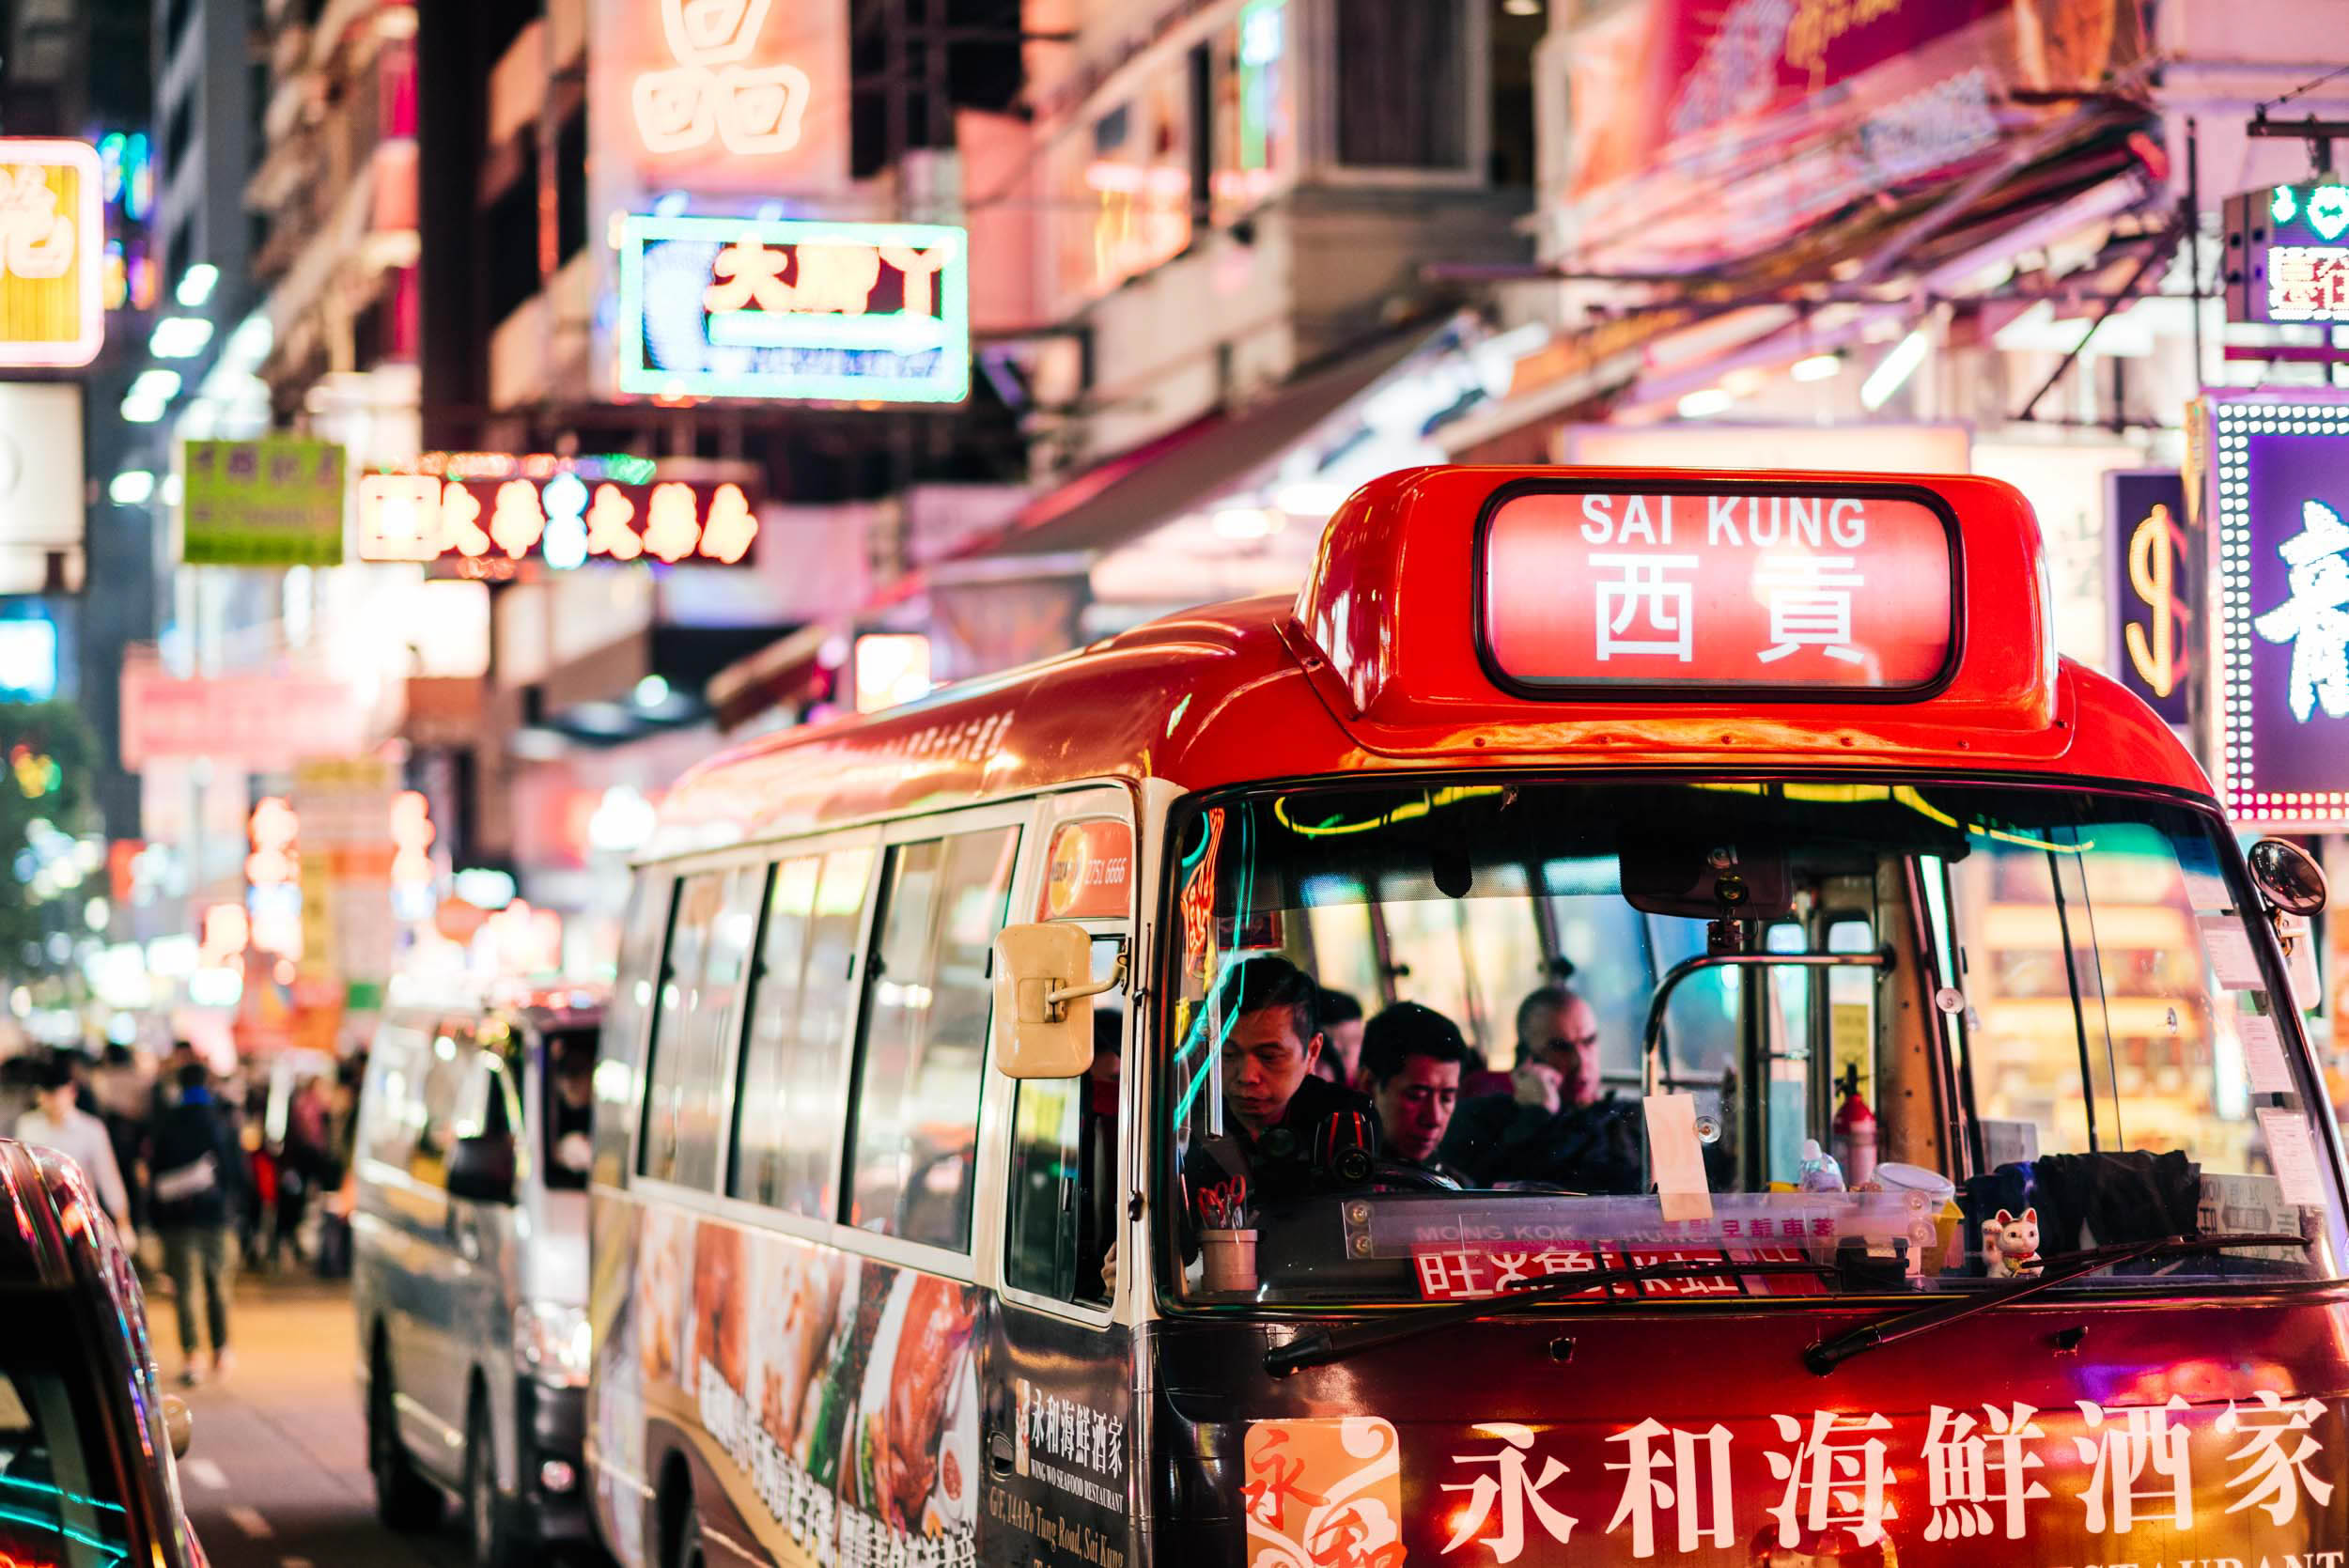 sai-kung-bus-mongkok-colour-neon-hong-kong-china